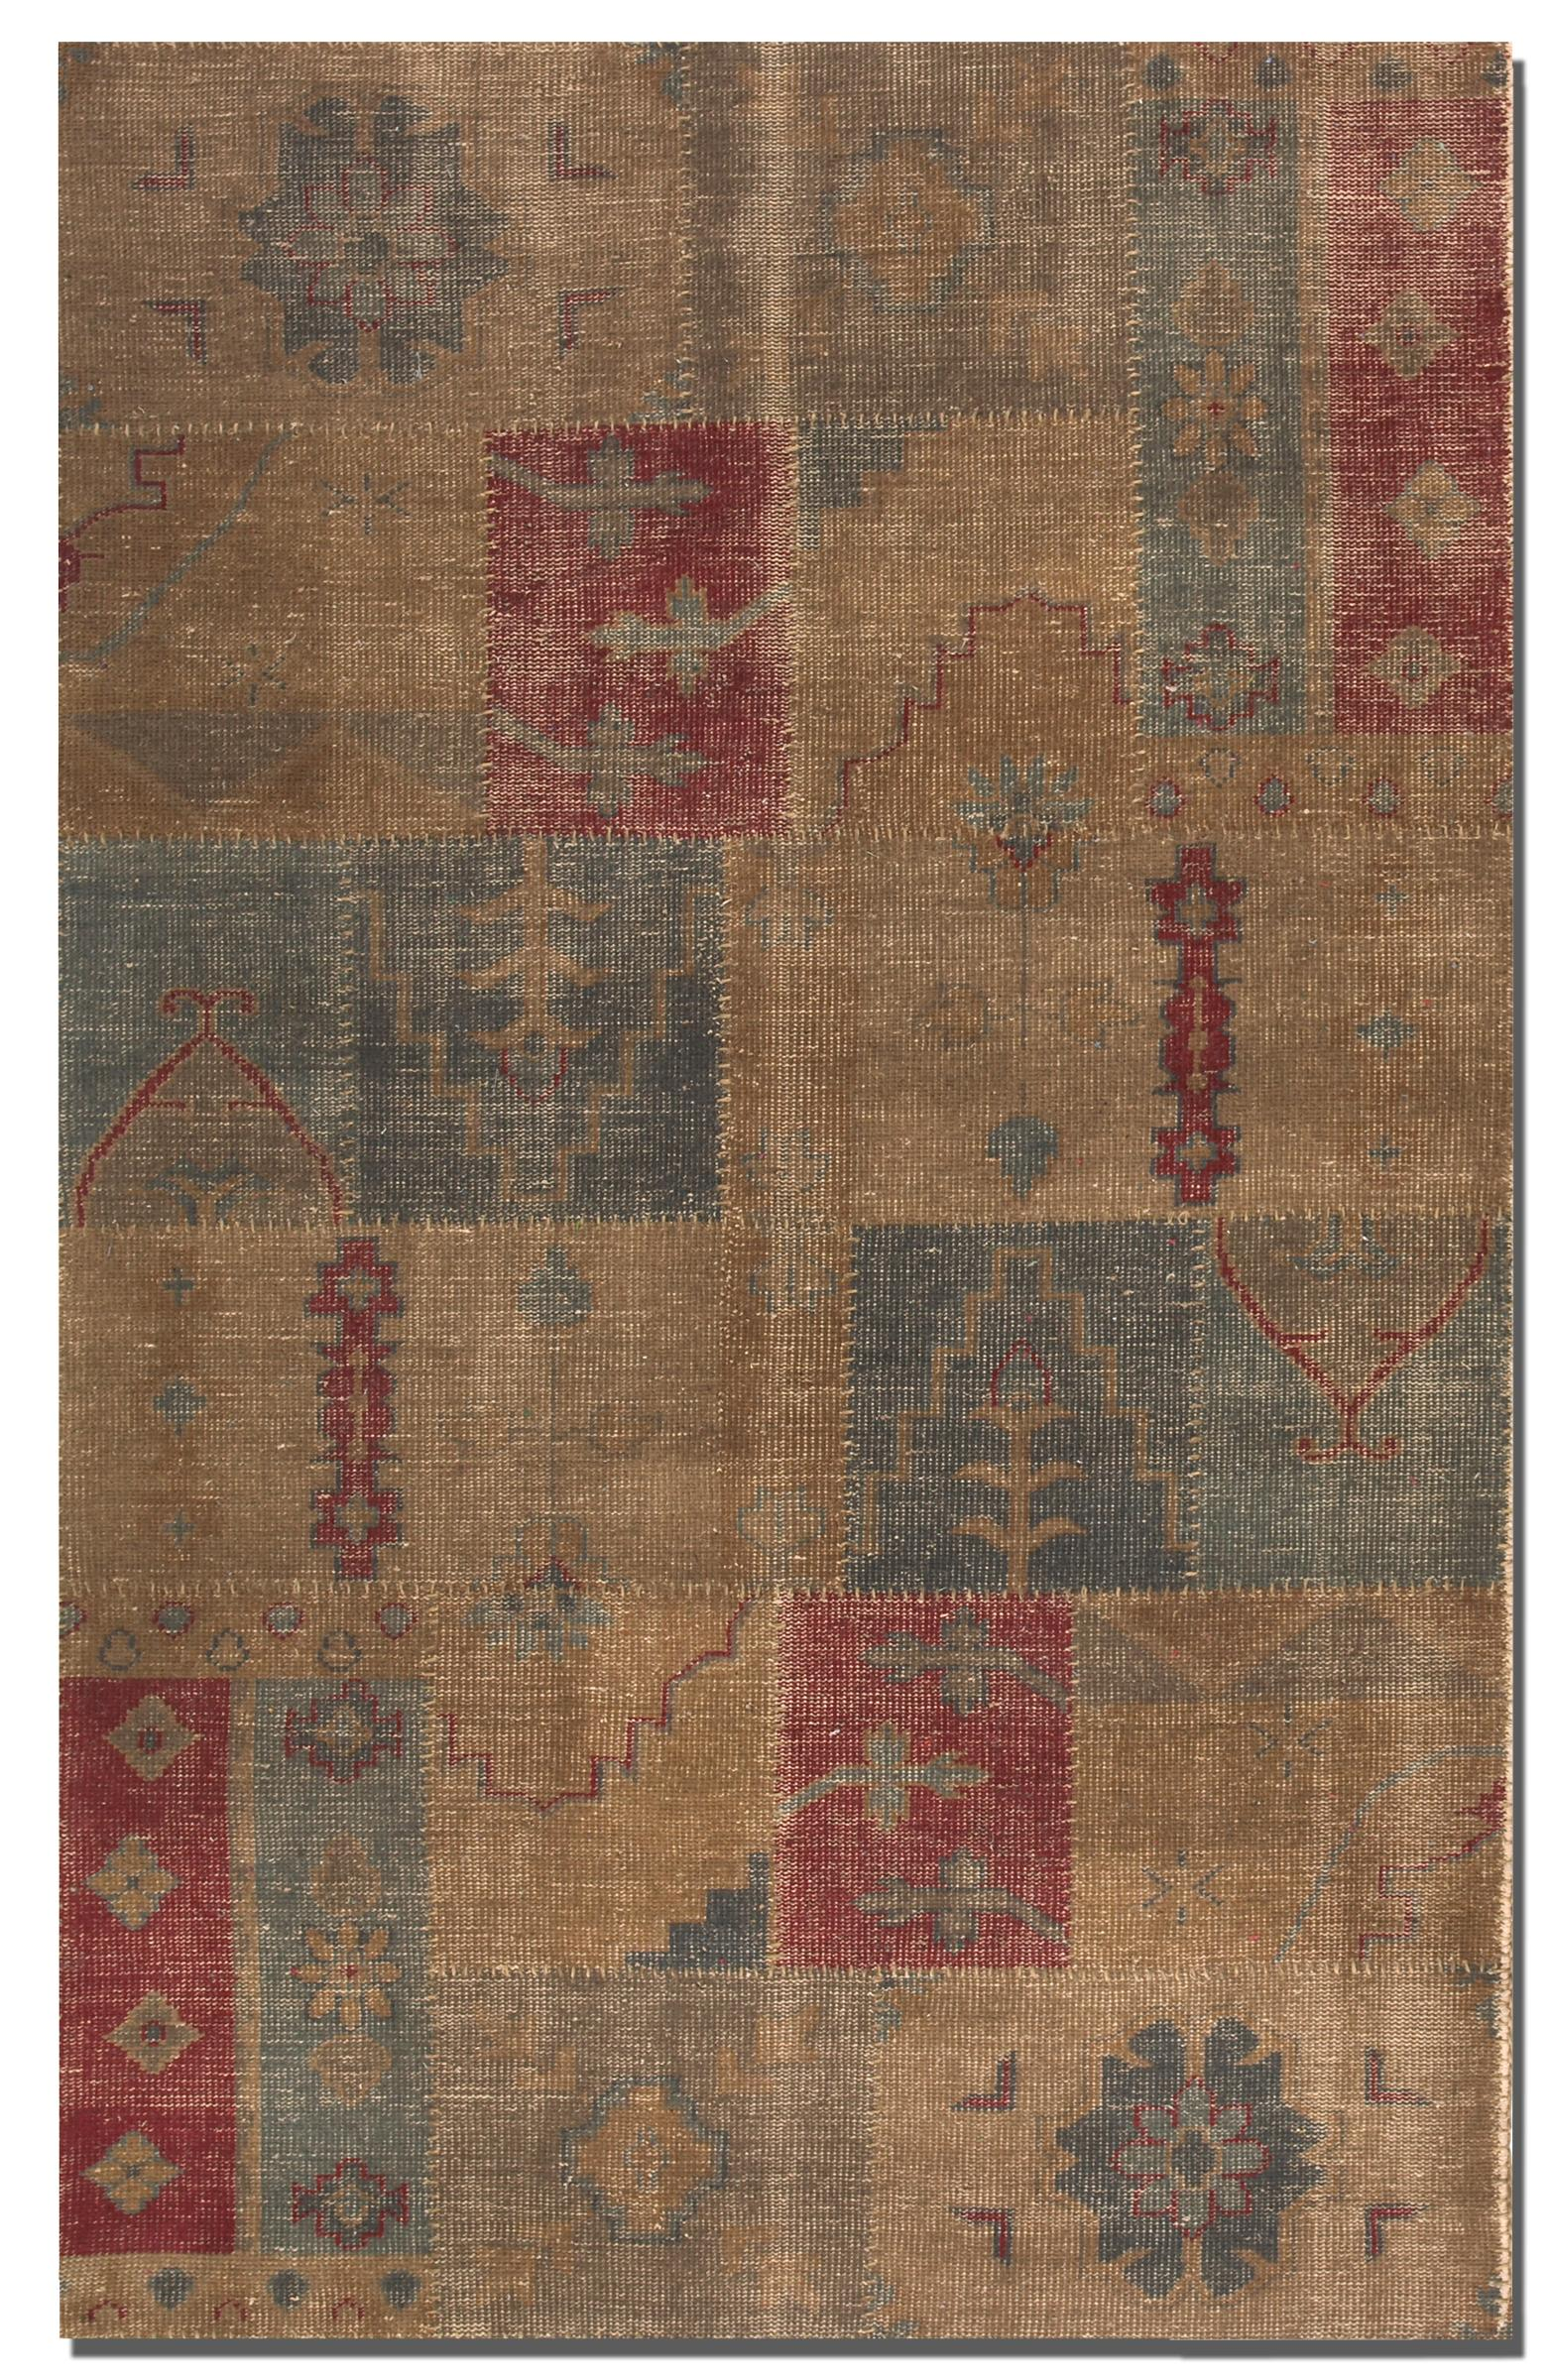 Uttermost Rugs Anadolu 8 X 10  - Item Number: 70003-8